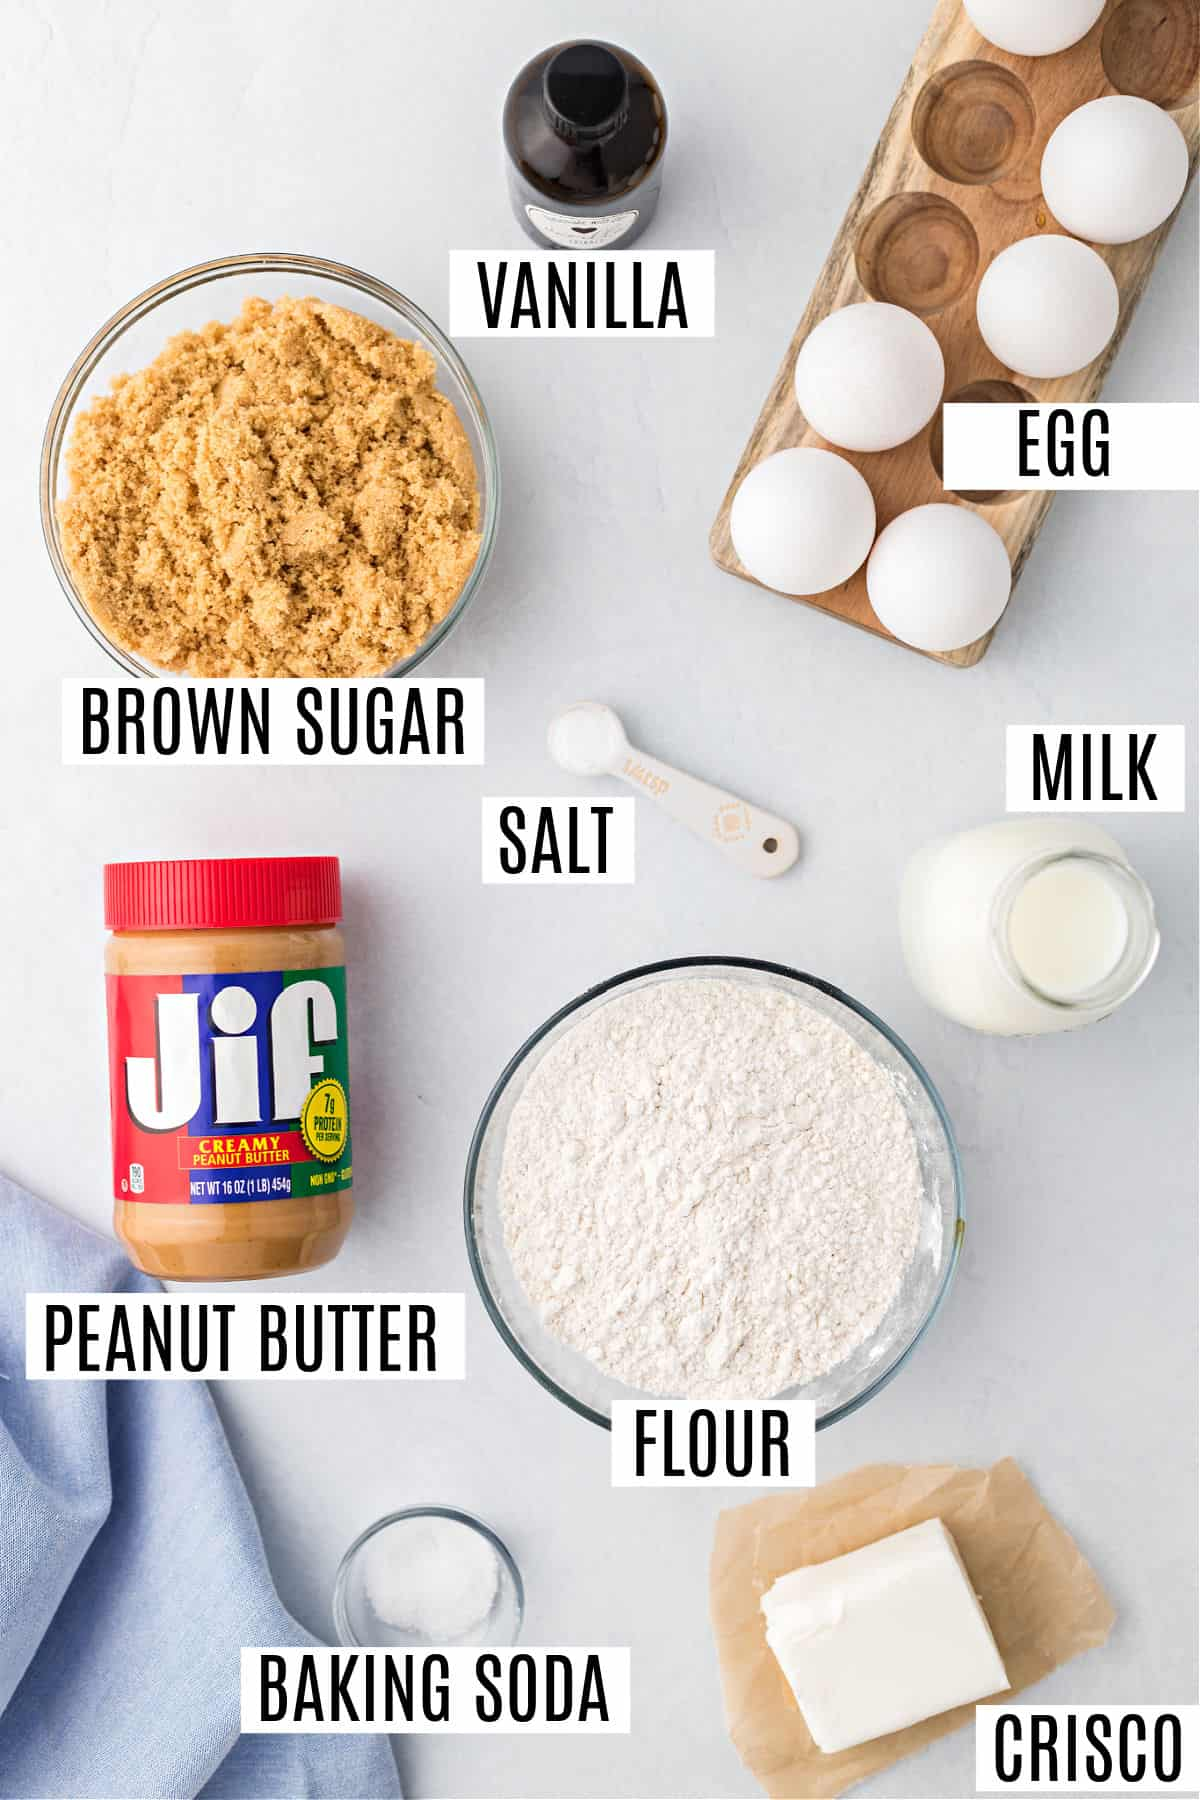 Ingredients needed for Jif Irresistible peanut butter cookie recipe.